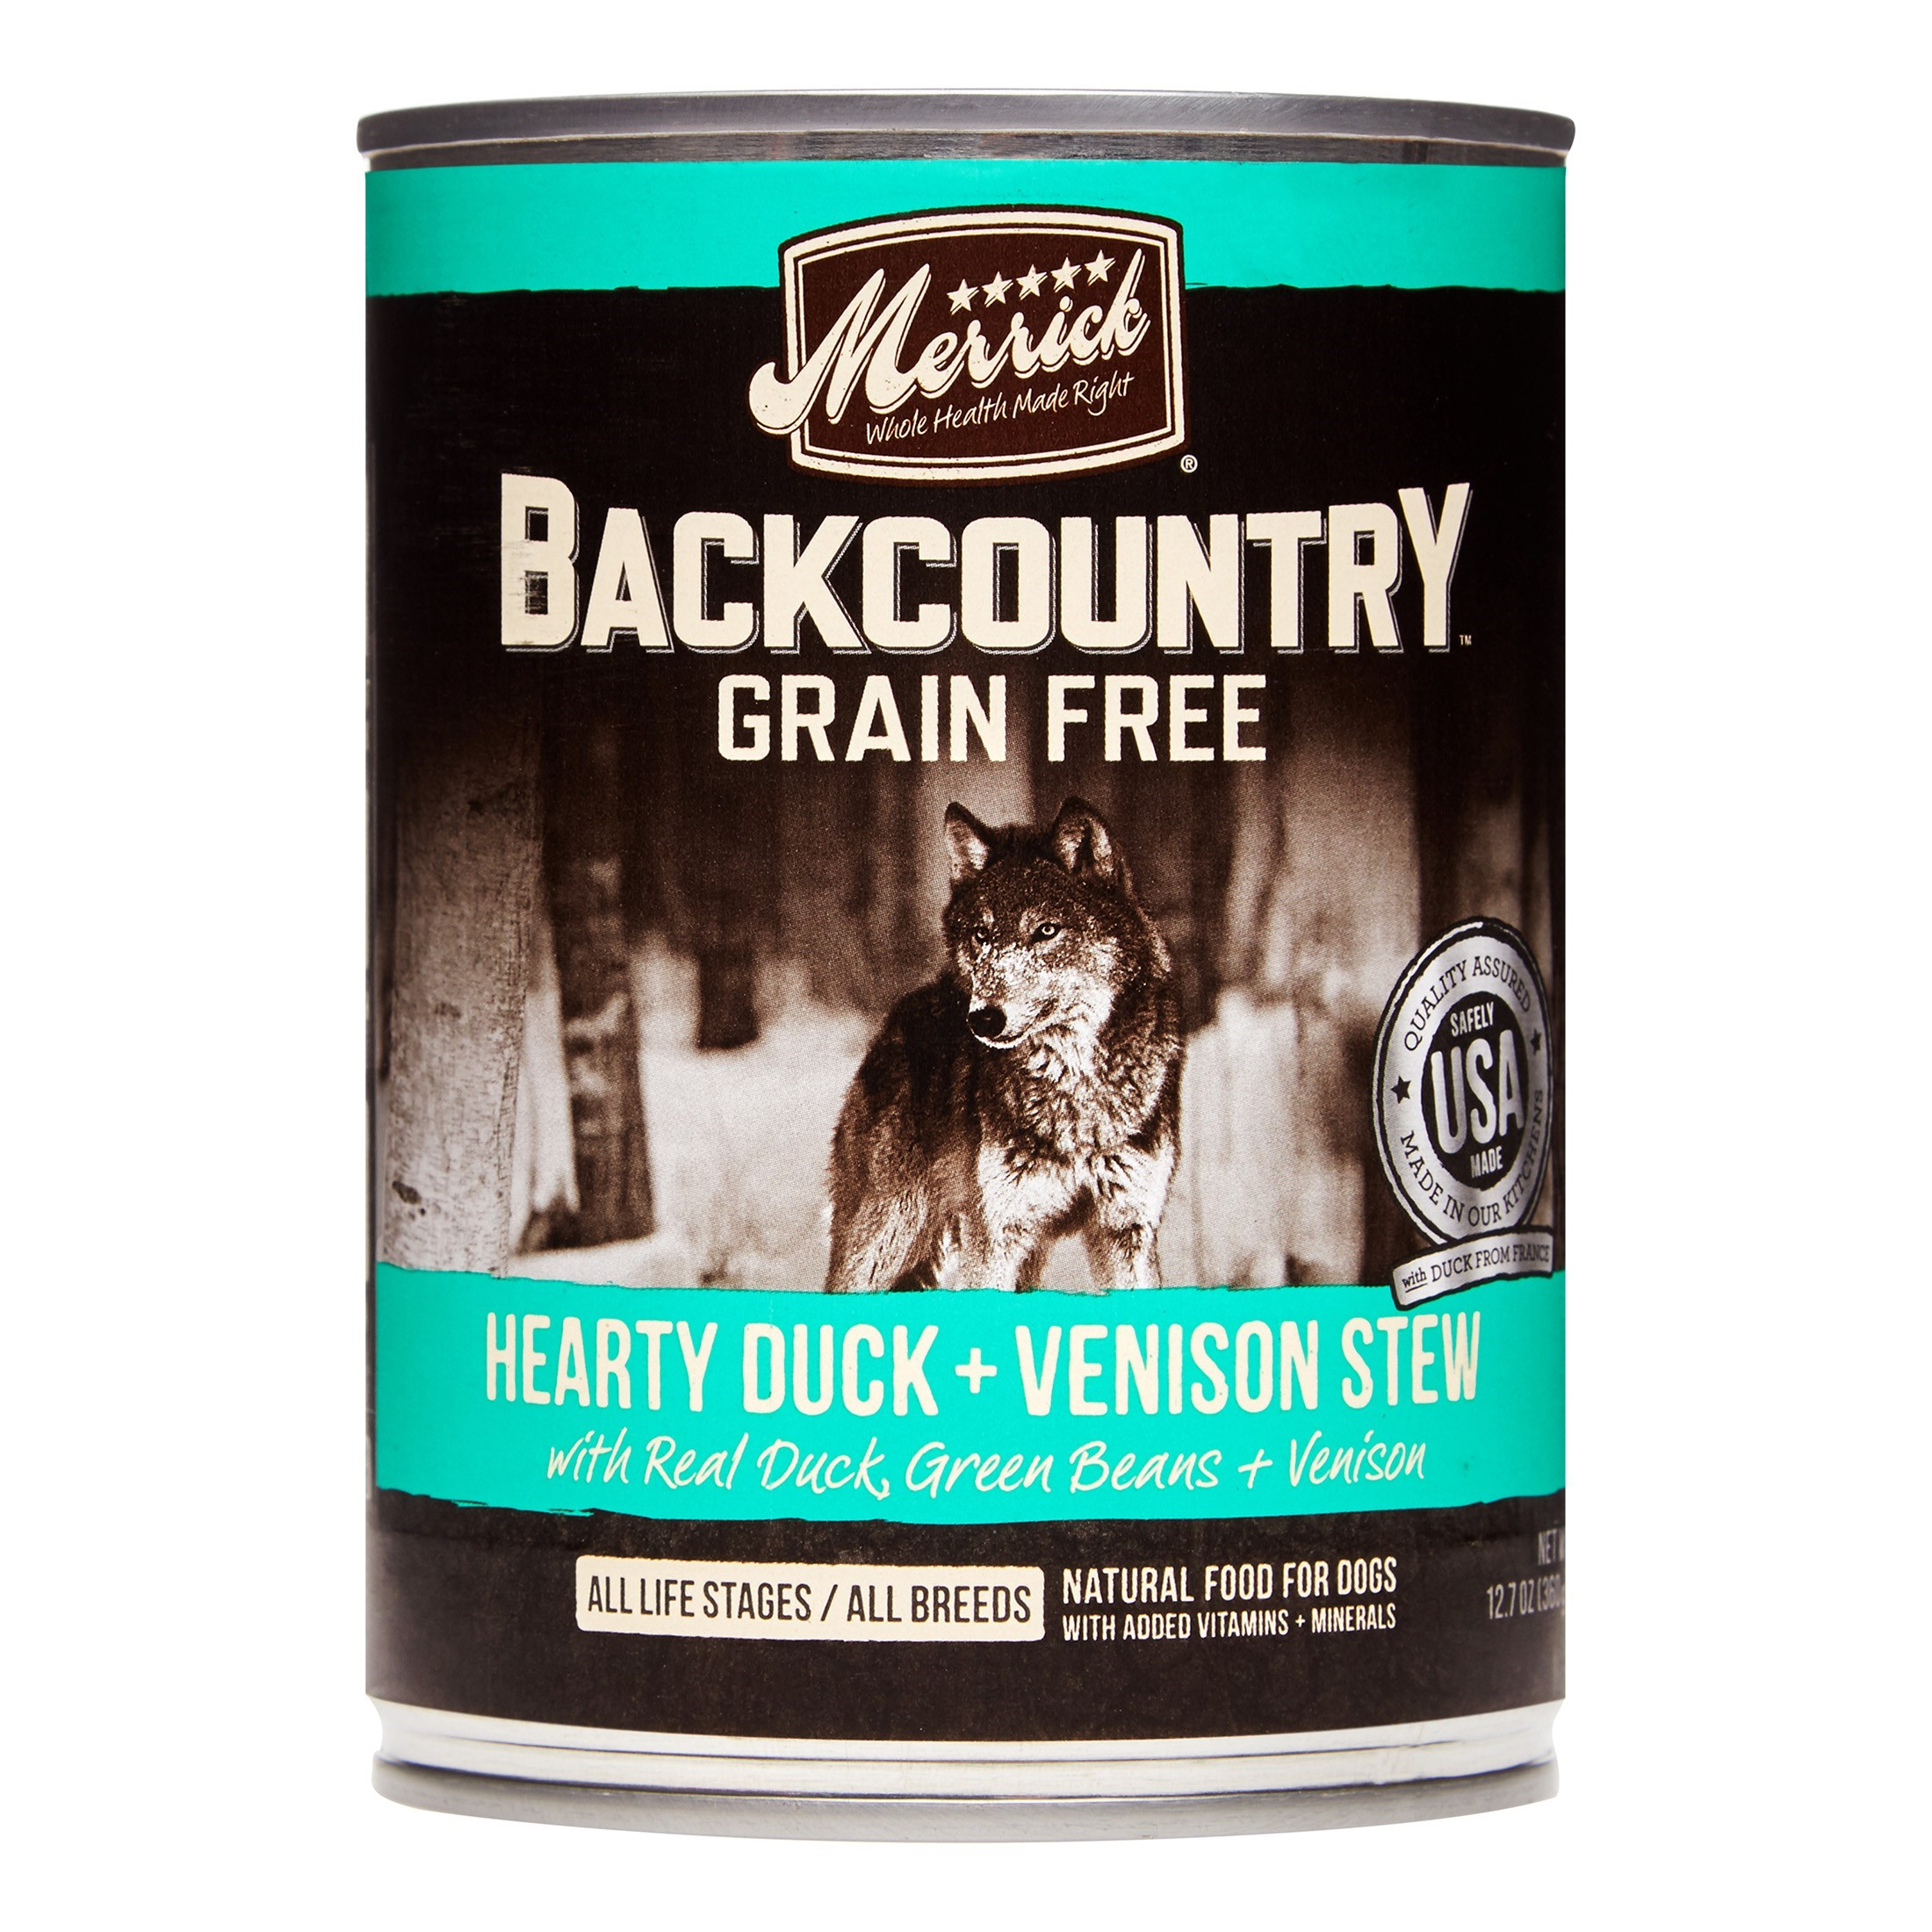 Merrick Backcountry Grain-Free Hearty Duck + Venison Stew Wet Dog Food, 12.7 oz, Case of 12